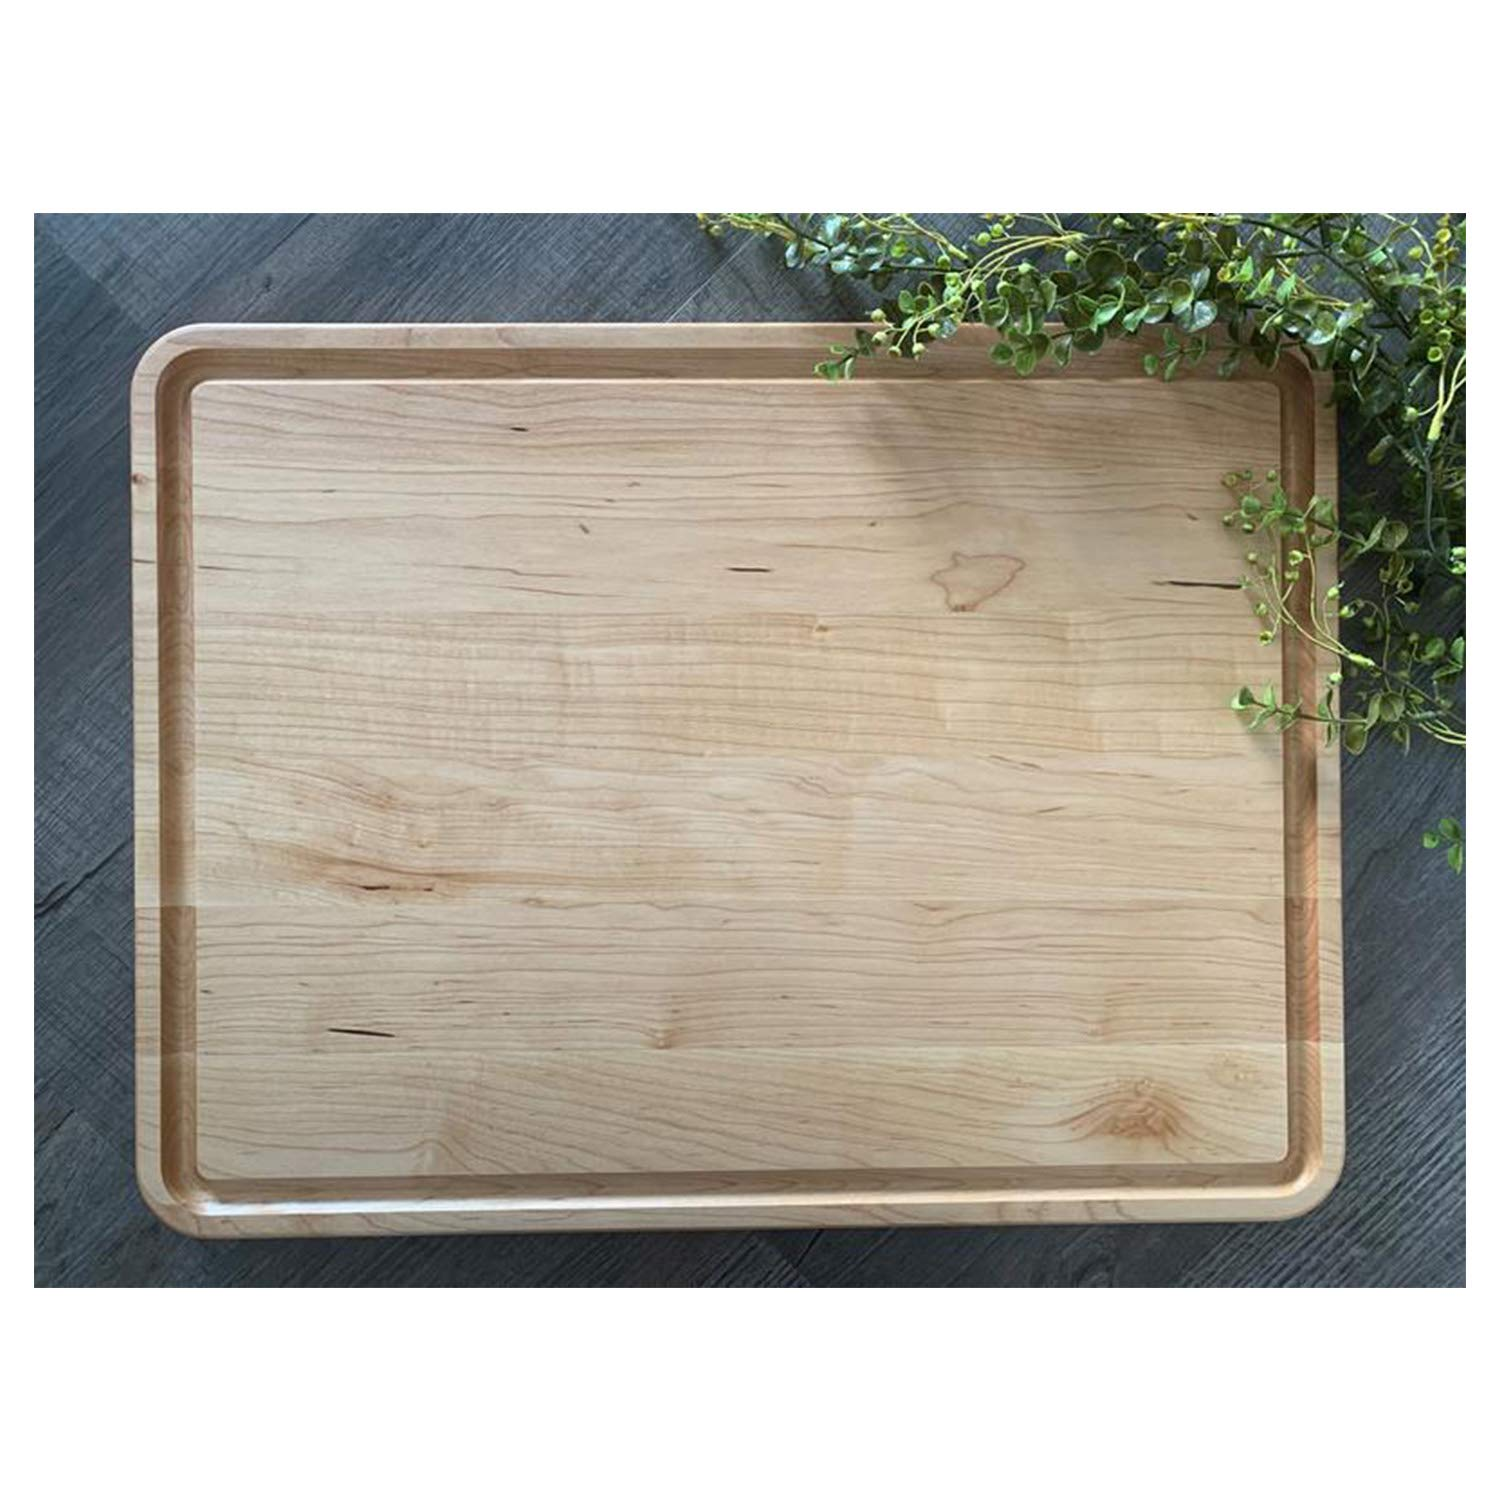 Gift for Parents and Grandma Custom Cutting Board Housewarming Gifts Anniversary Gift for Her Wedding Gifts for the Couples